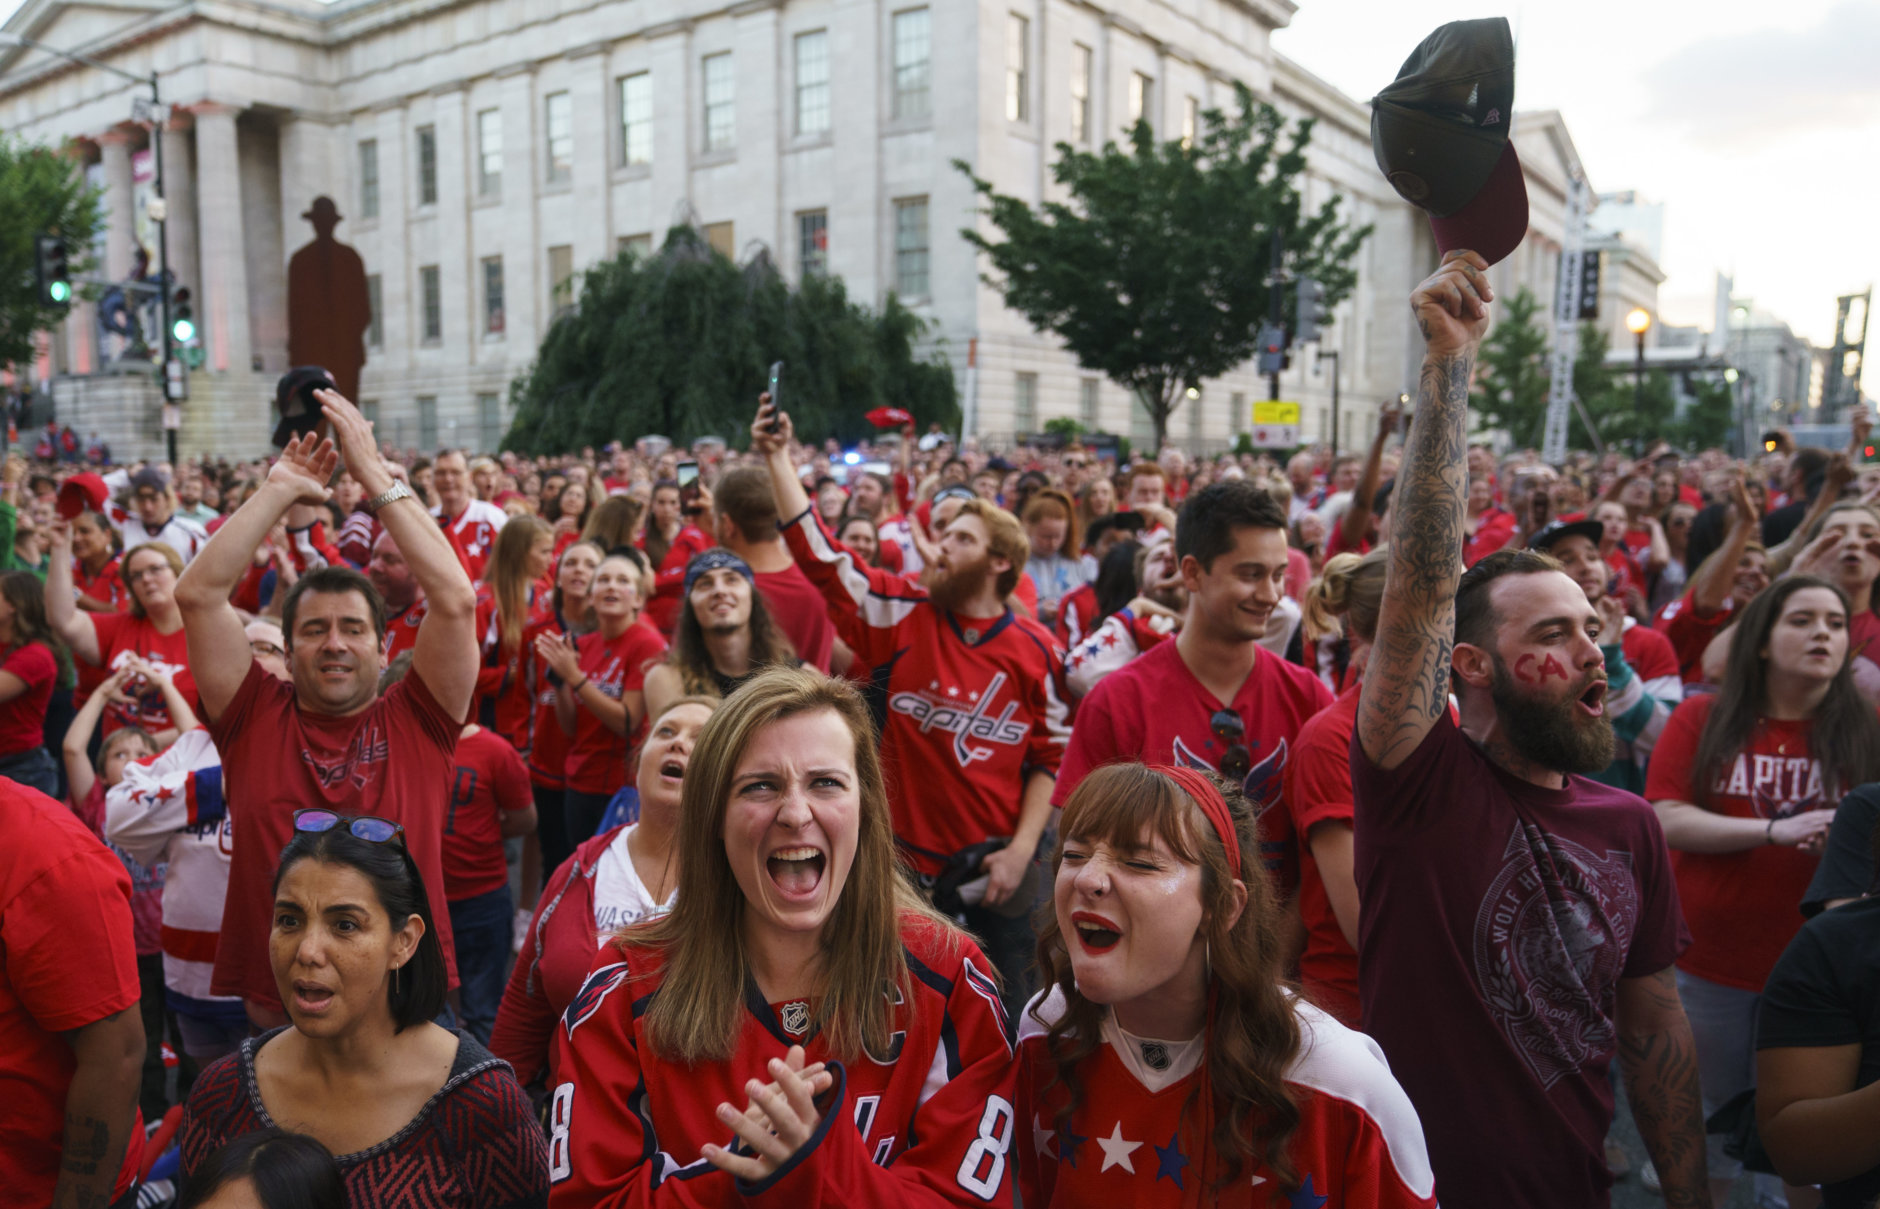 Fans cheer at the conclusion of the National Anthem as they gather in front of Capitol One Arena to watch of Game 4 of the NHL hockey Stanley Cup Final between the Washington Capitals and the Vegas Golden Knights, Monday, June 4, 2018, in Washington. (AP Photo/Carolyn Kaster)